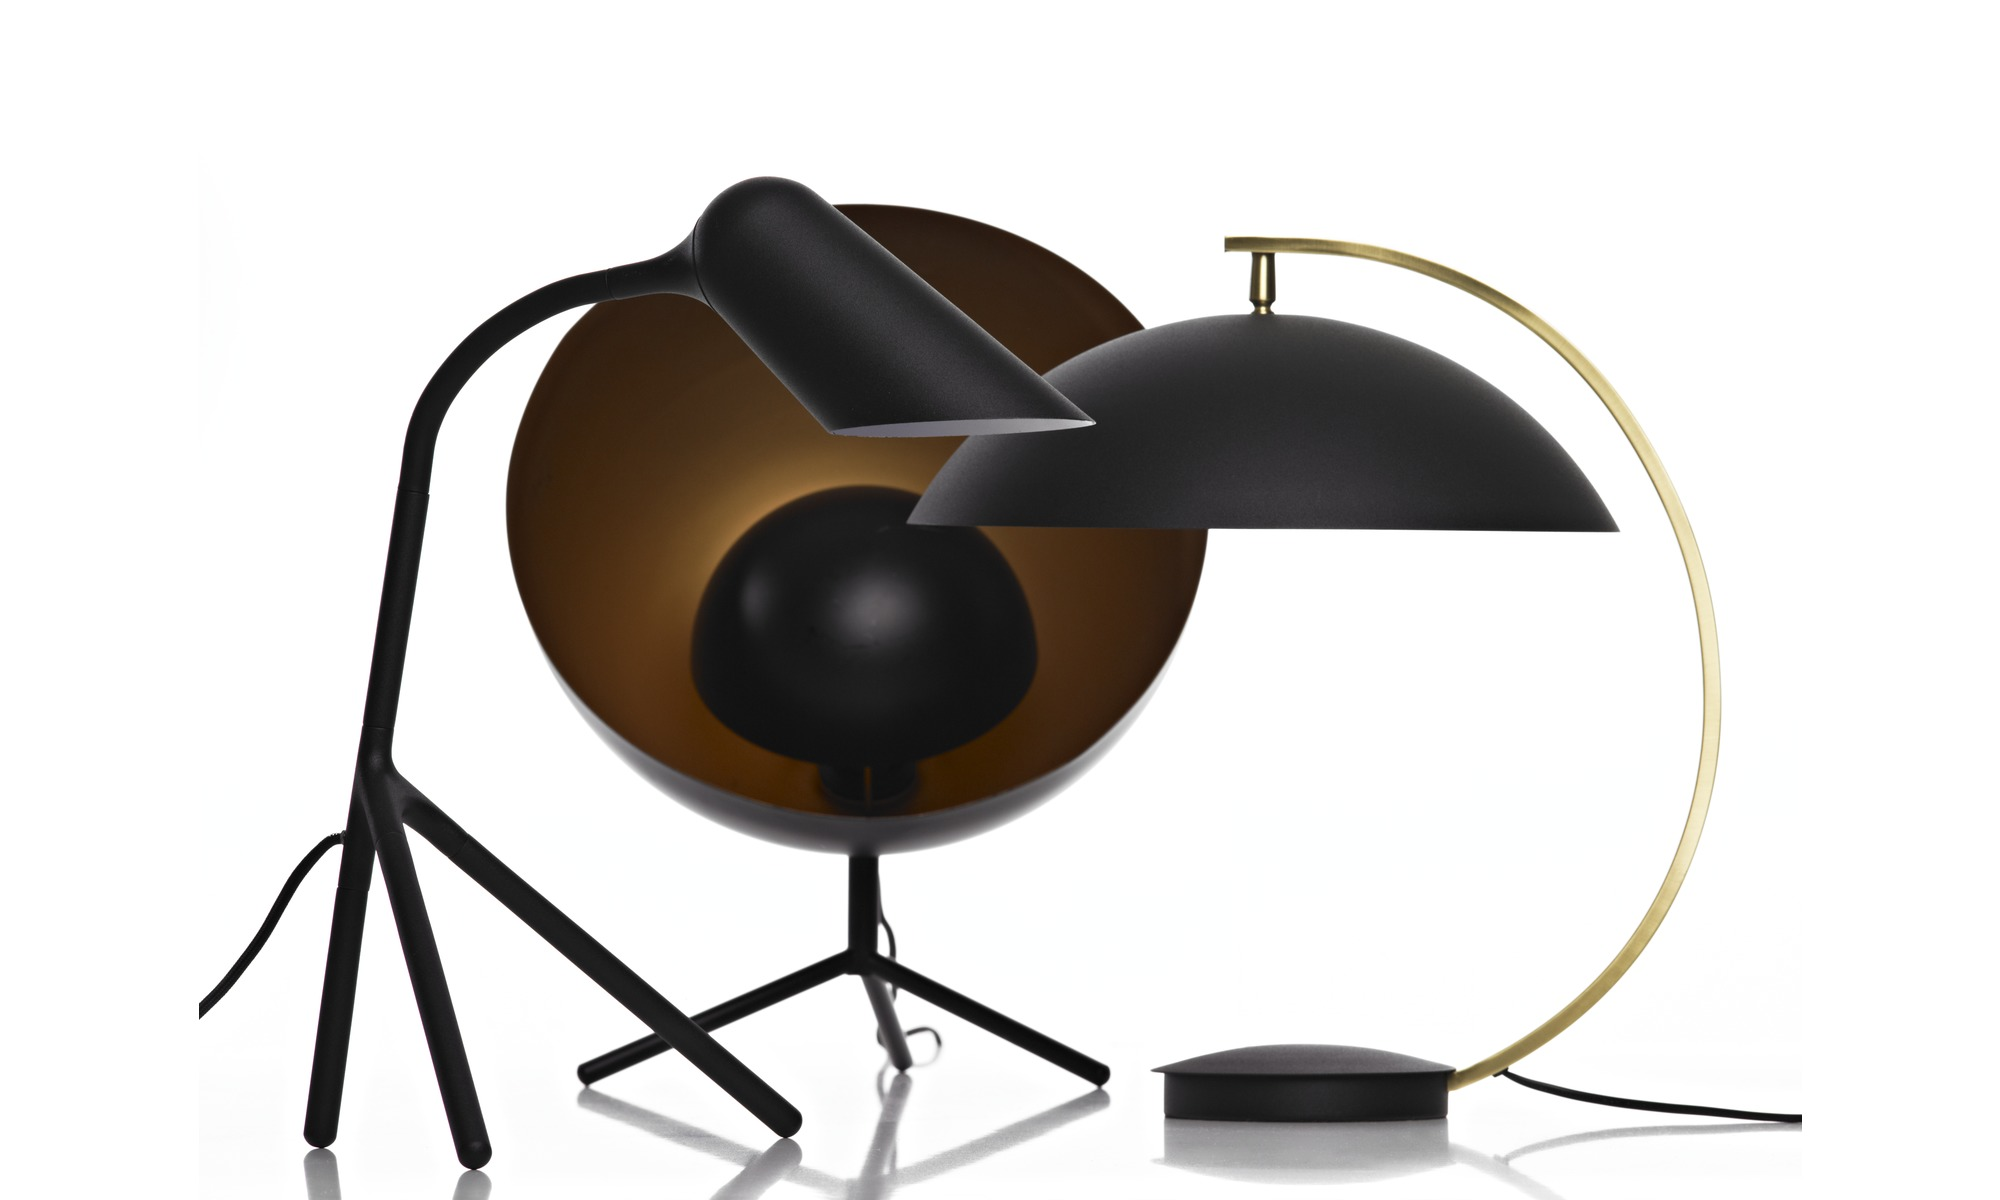 lampes de table lampe de table satellite boconcept. Black Bedroom Furniture Sets. Home Design Ideas